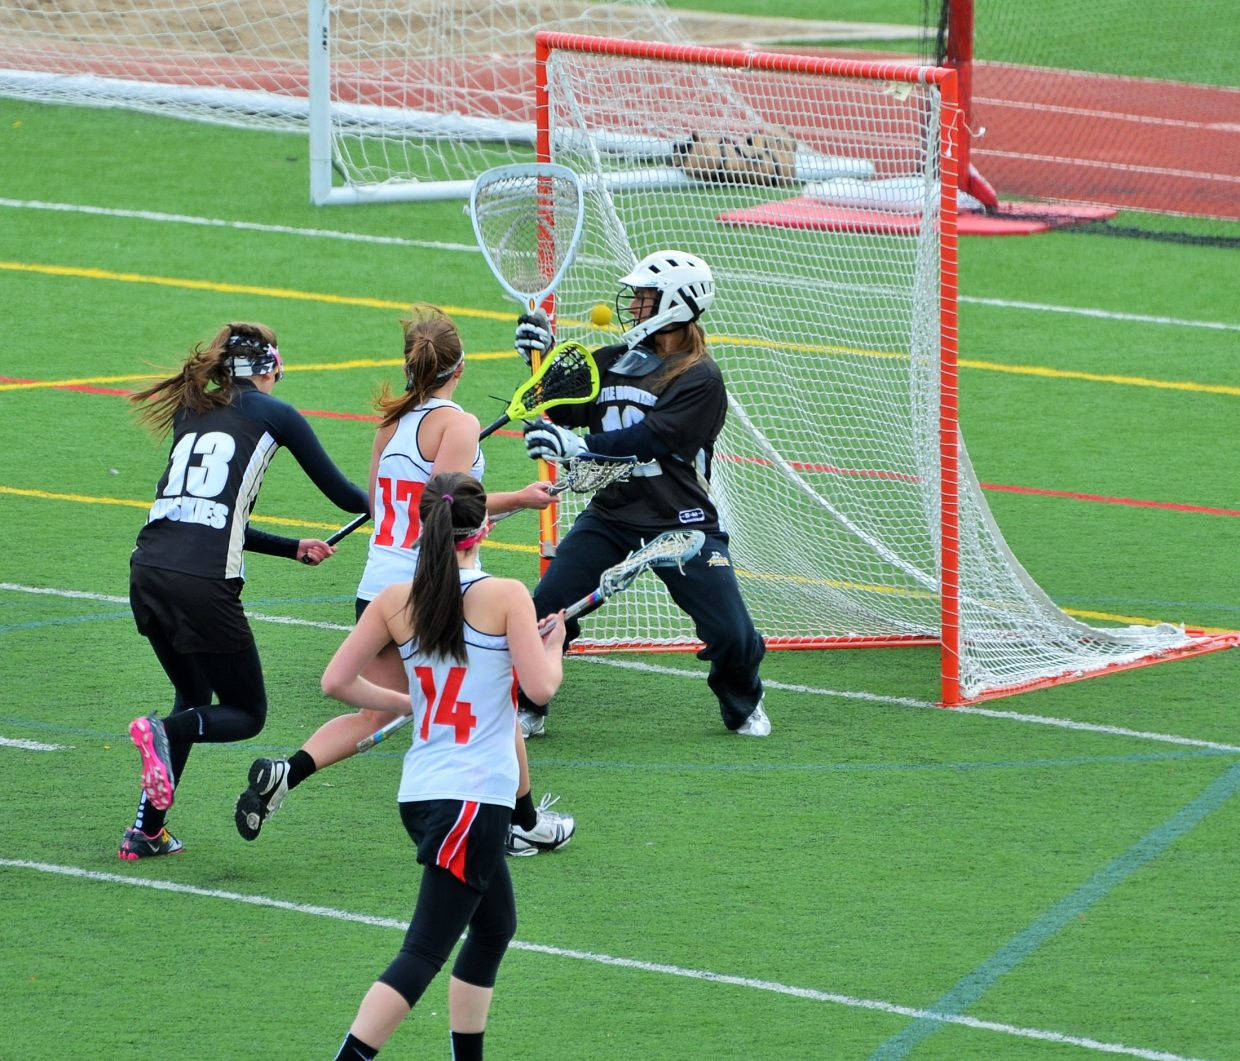 Steamboat's Lexy Look (#17) scores her first goal in the game Wednesday against Battle Mountain. Bella Arce (#14) assists. Submitted by Shannon Lukens.